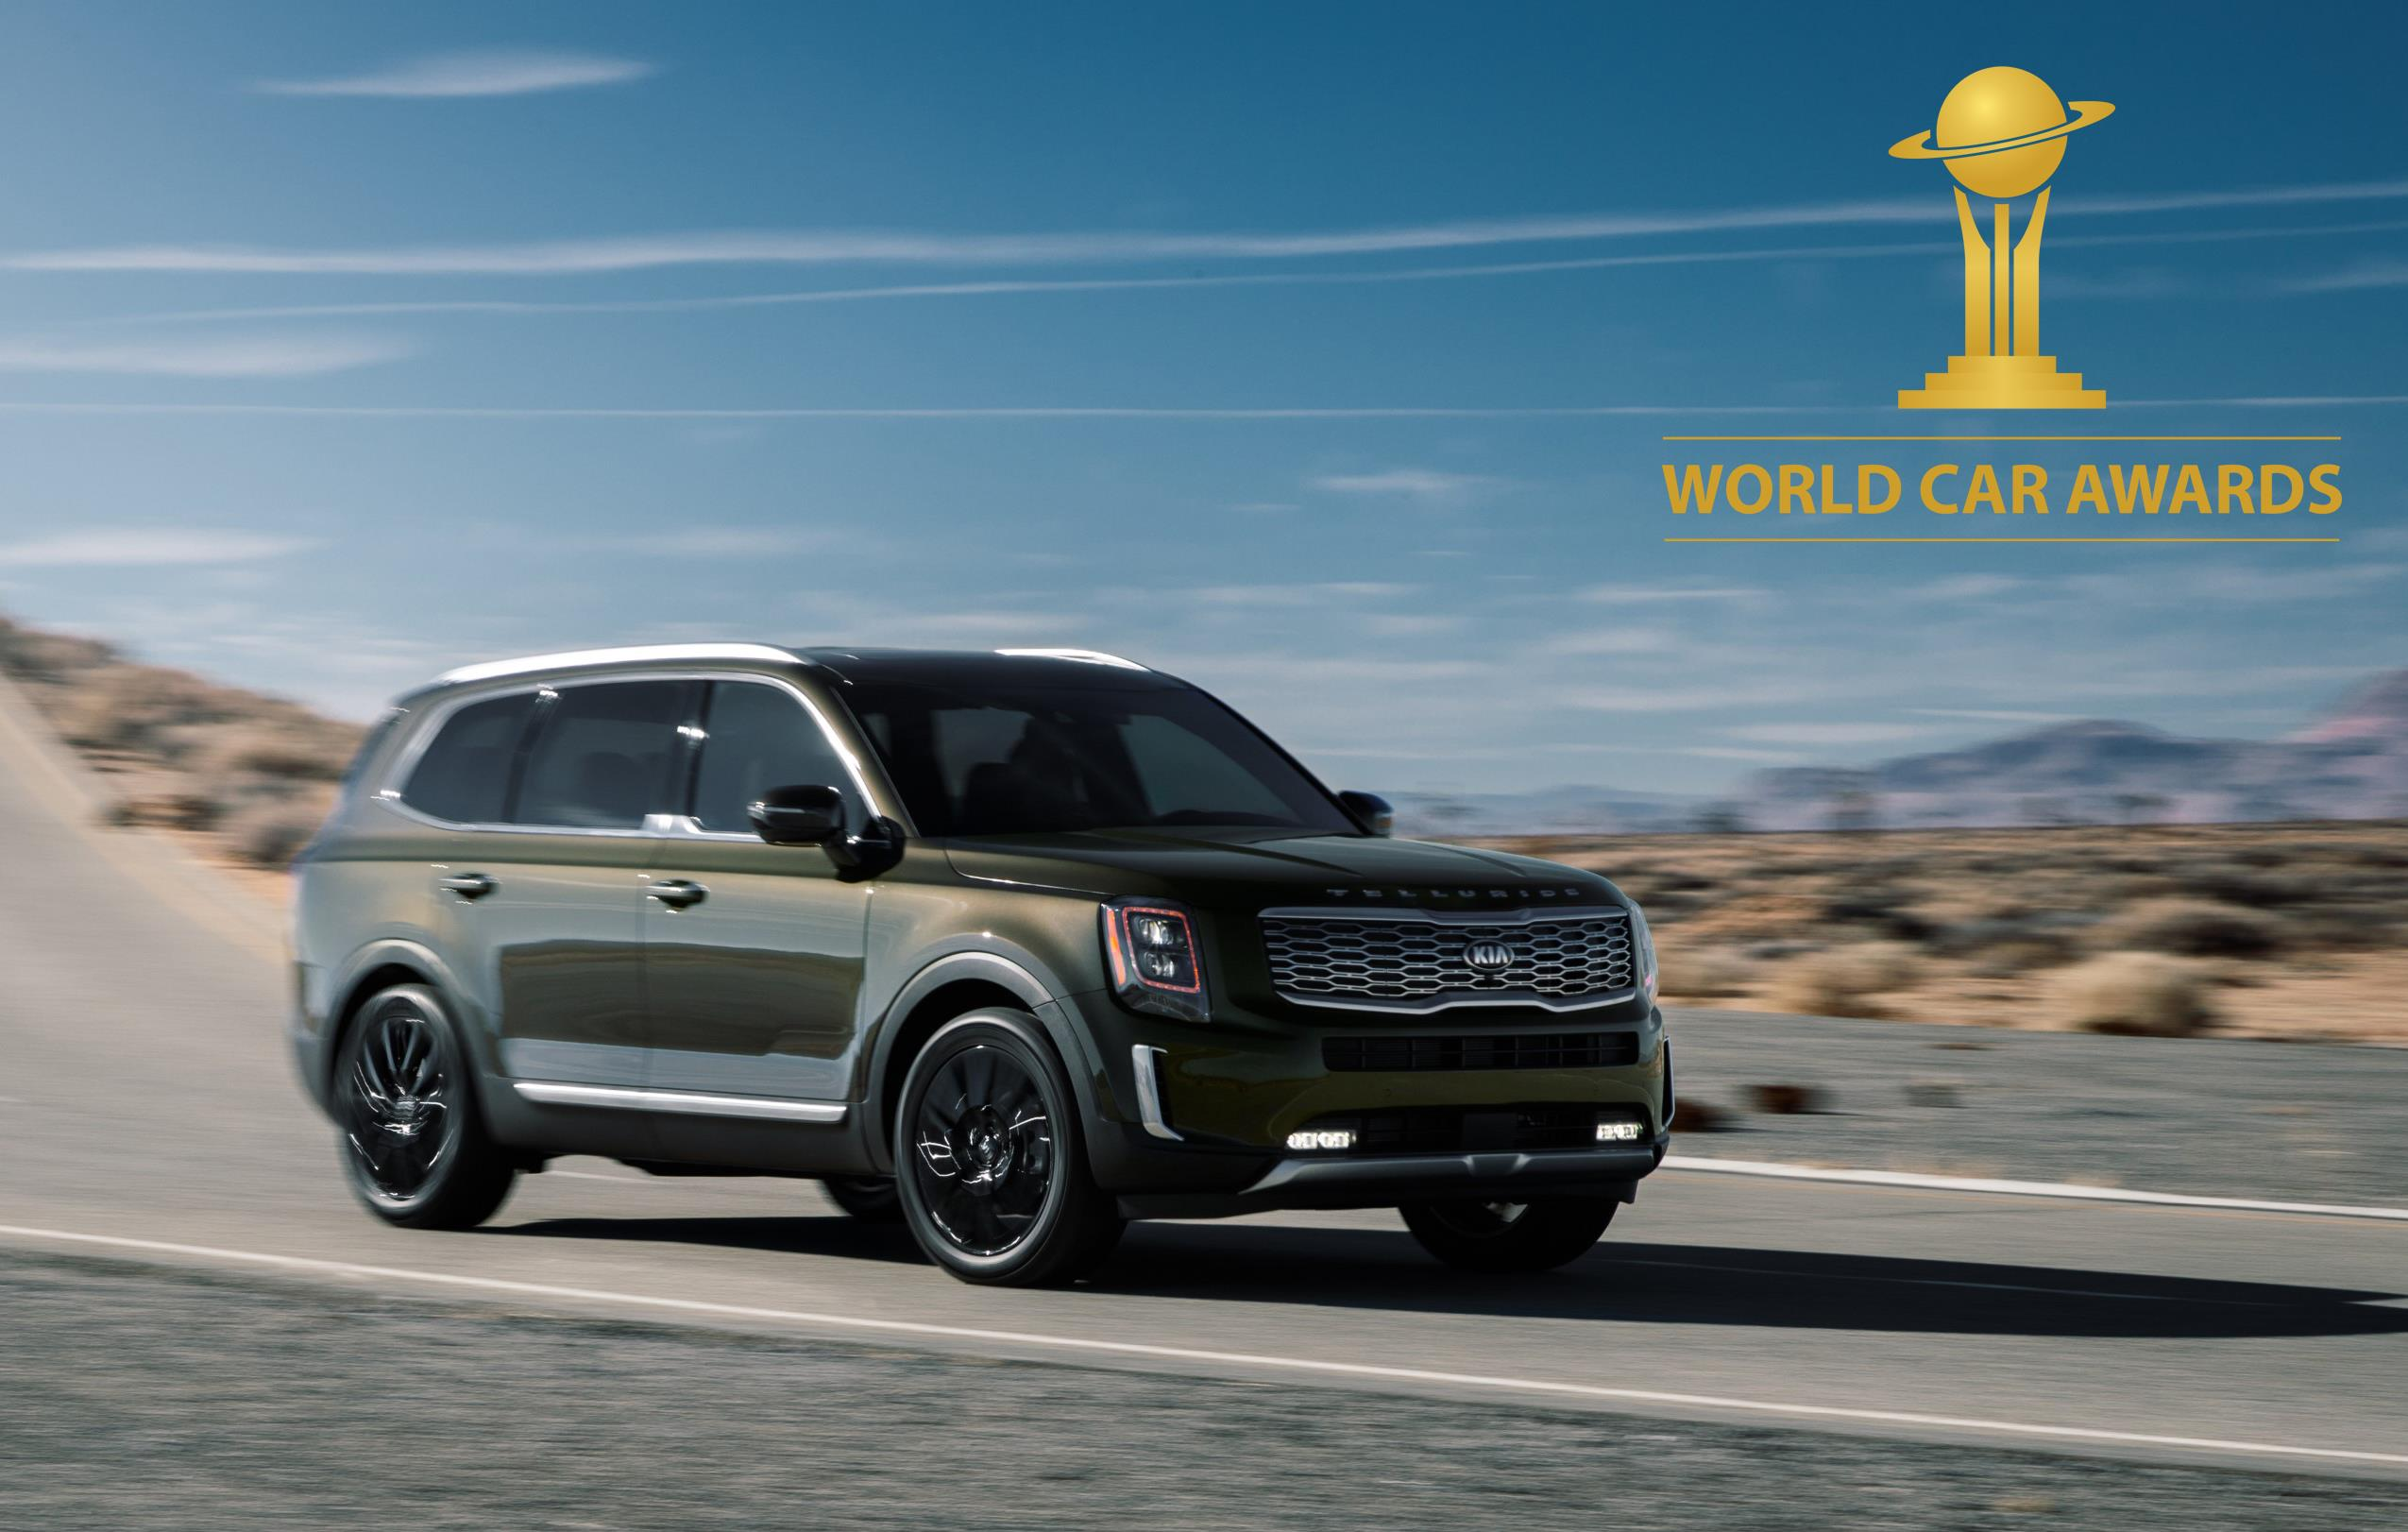 Kia Telluride Win 2020 World Car of the Year, Soul EV World Urban Car